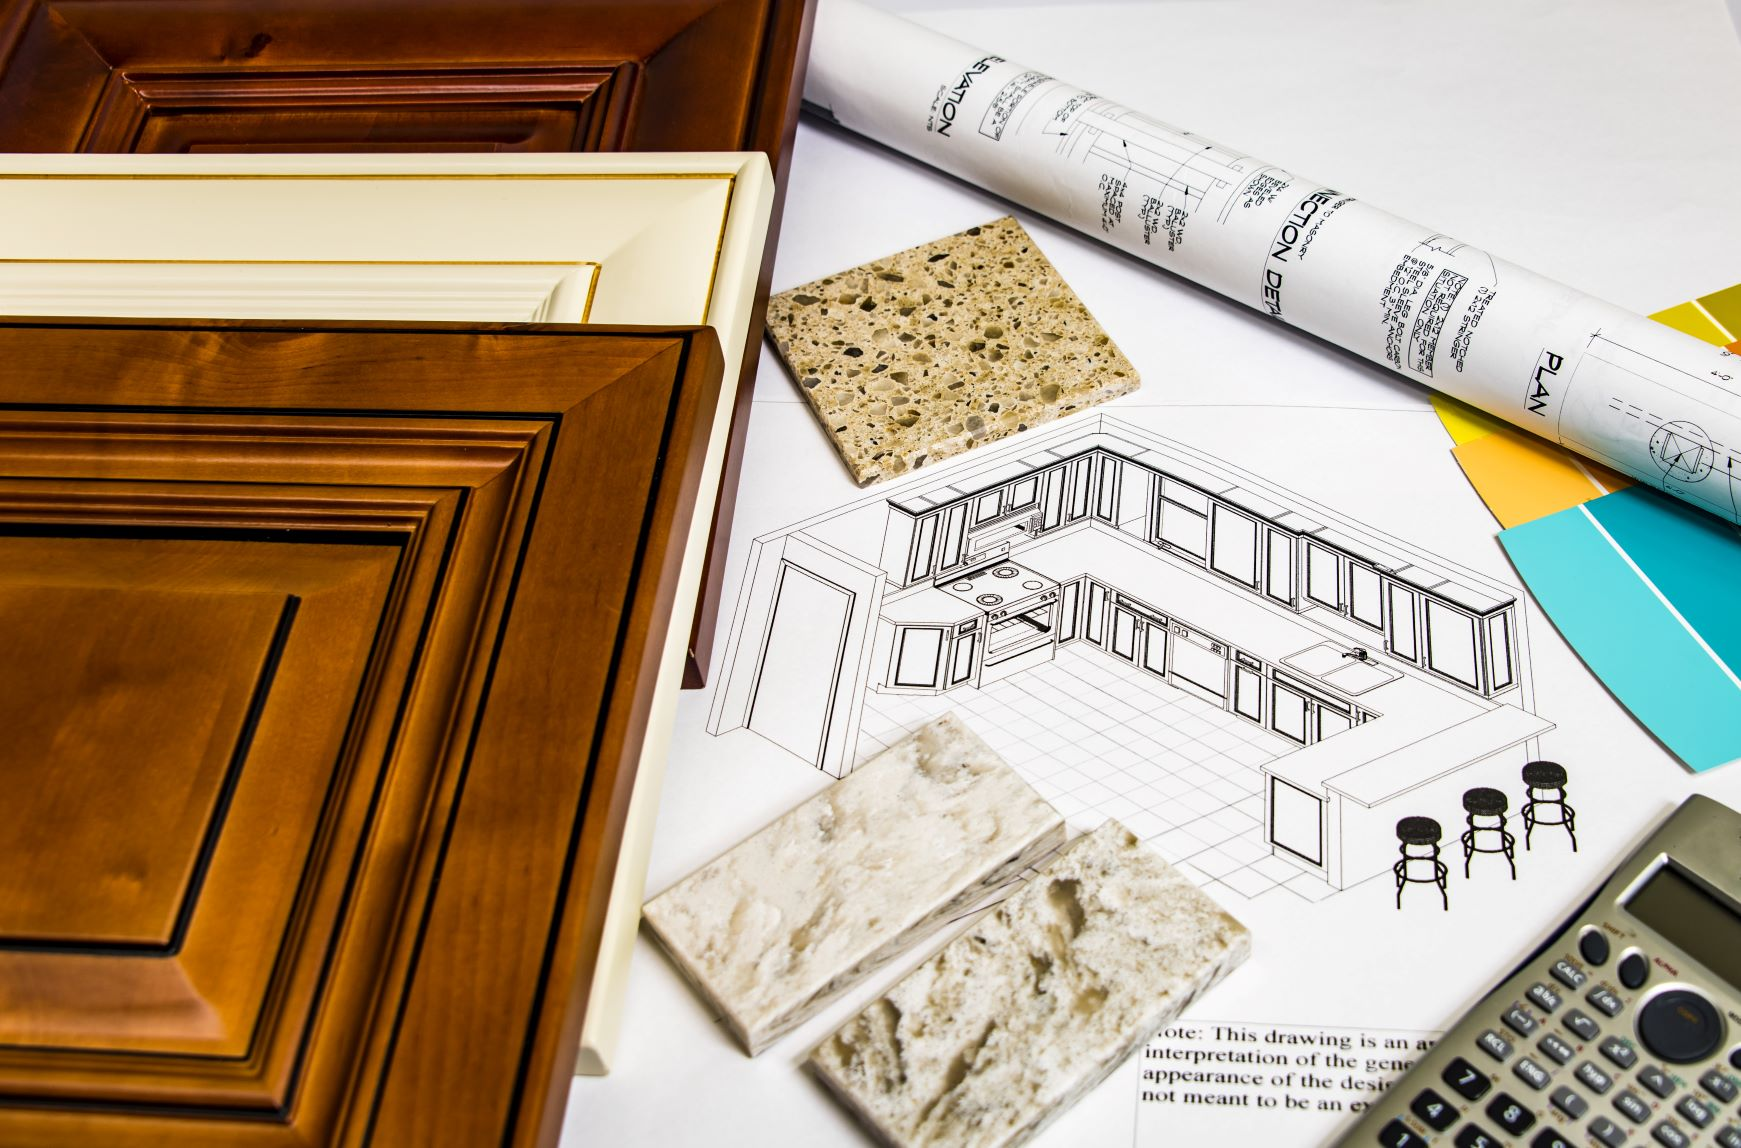 From the durability to the cost, there are many differences between custom, semi-custom, and stock cabinets. Our kitchen design consultants can help you determine which type of kitchen cabinet is right for your Phoenix area home.